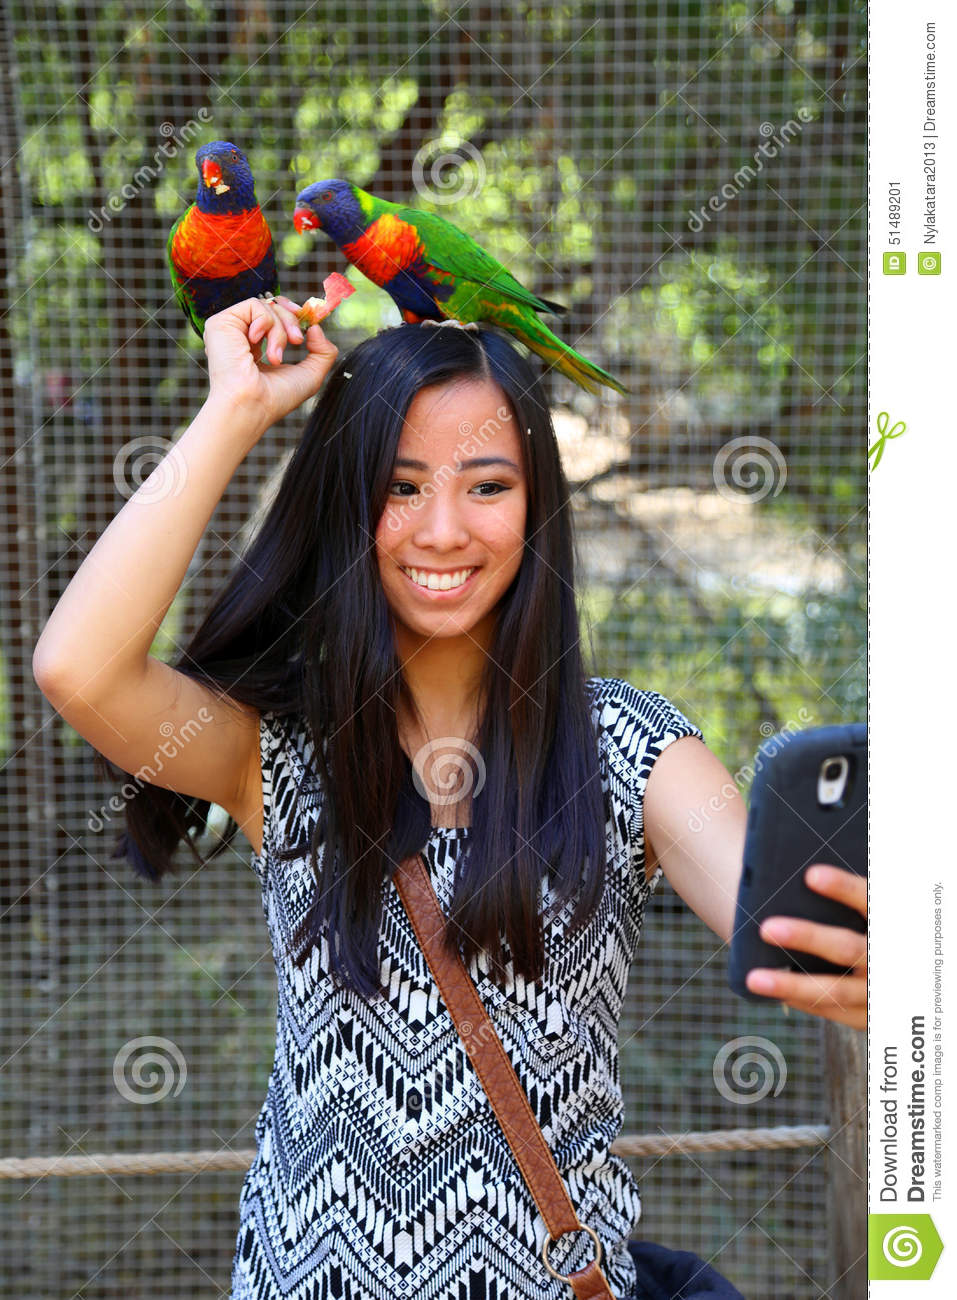 birdseye asian girl personals Staggering aerial photos show nude bodies from a bird's-eye view asian voices life staggering aerial photos show nude bodies from a bird.